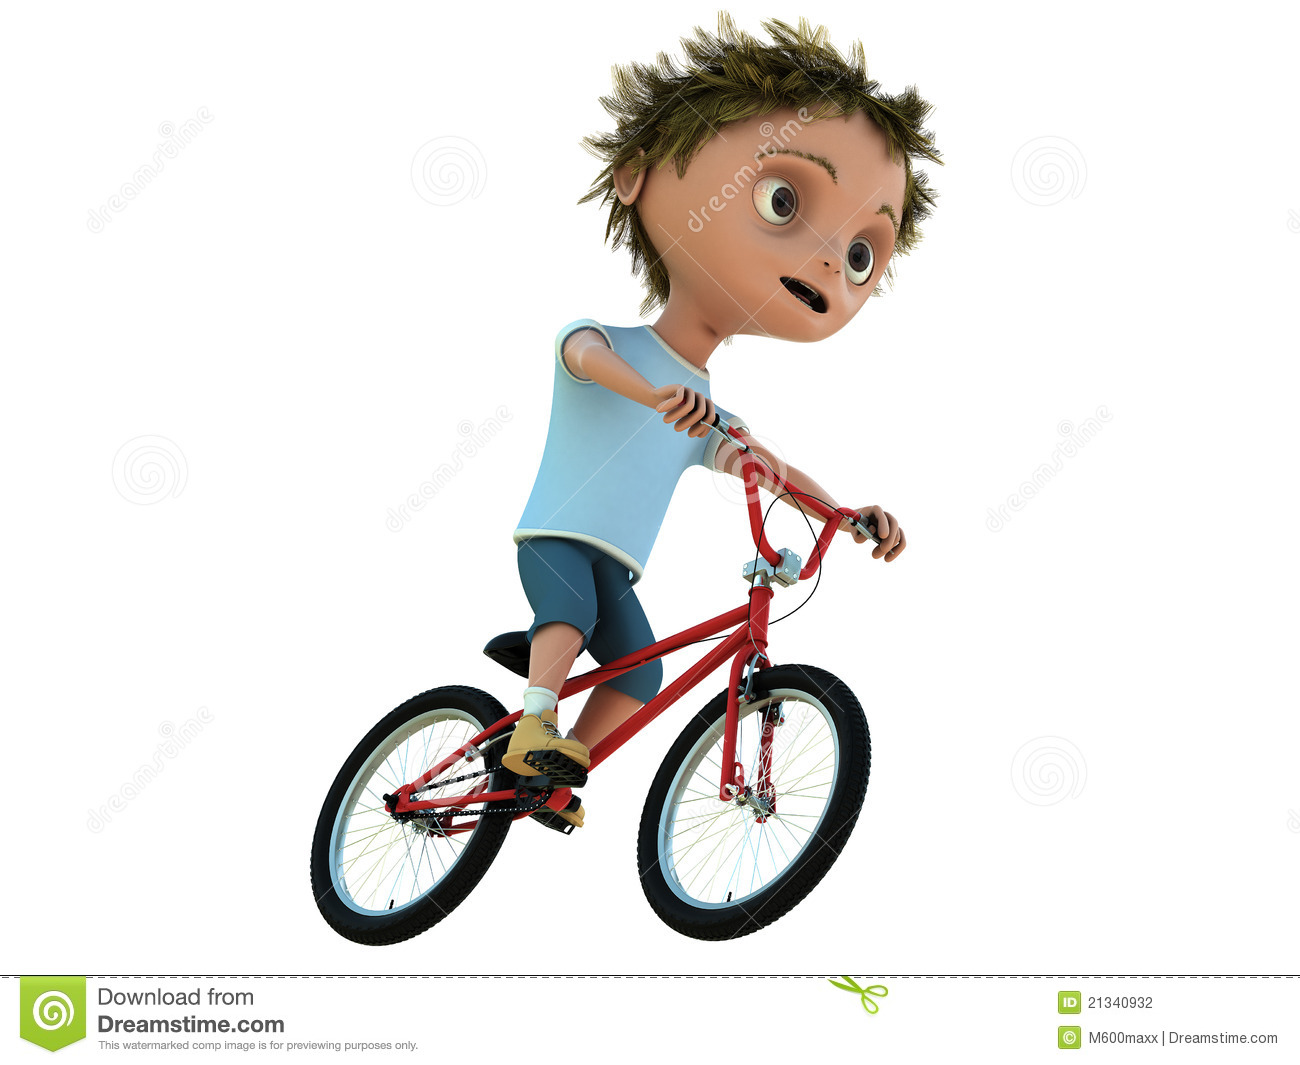 Kind auf fahrrad clipart picture library download Kind Auf Fahrrad Stockfotografie - Bild: 21340932 picture library download